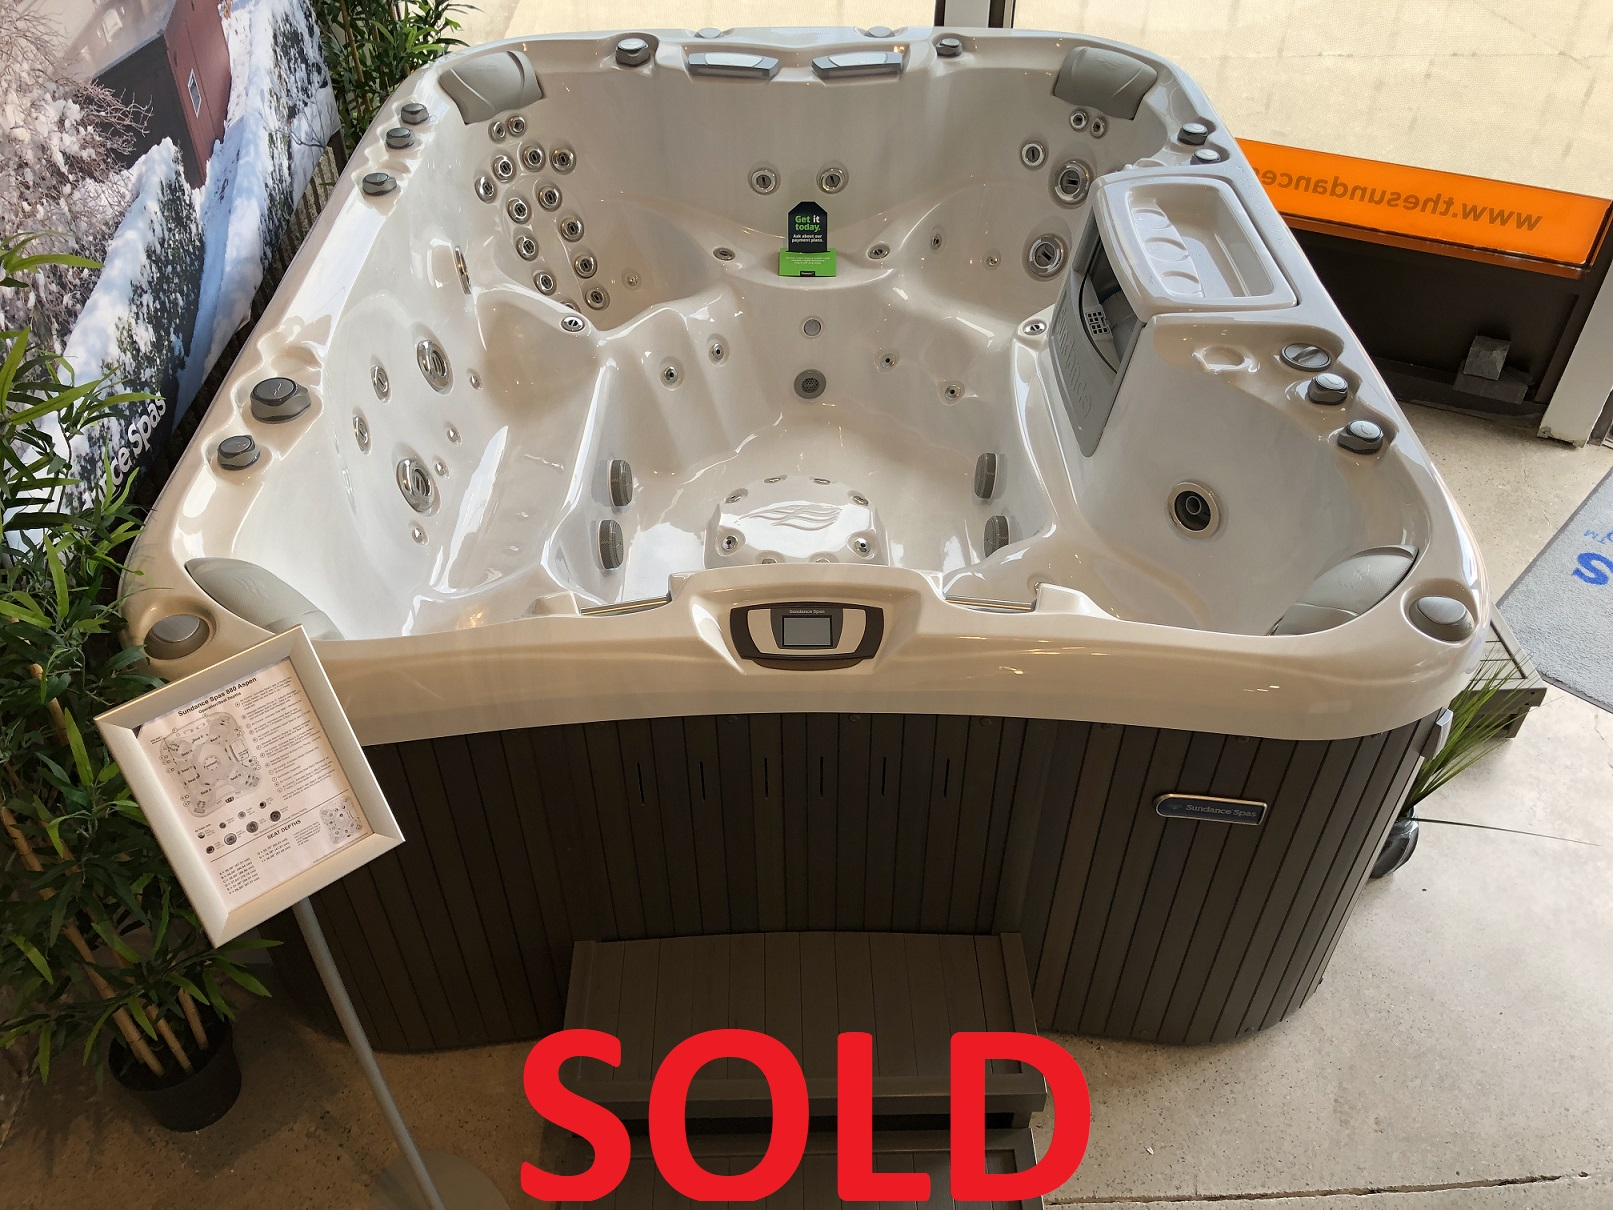 Sundance Spas 880 Series Aspen 8 person hot tub spa whirlpool jacuzzi near me Hamilton Ontario